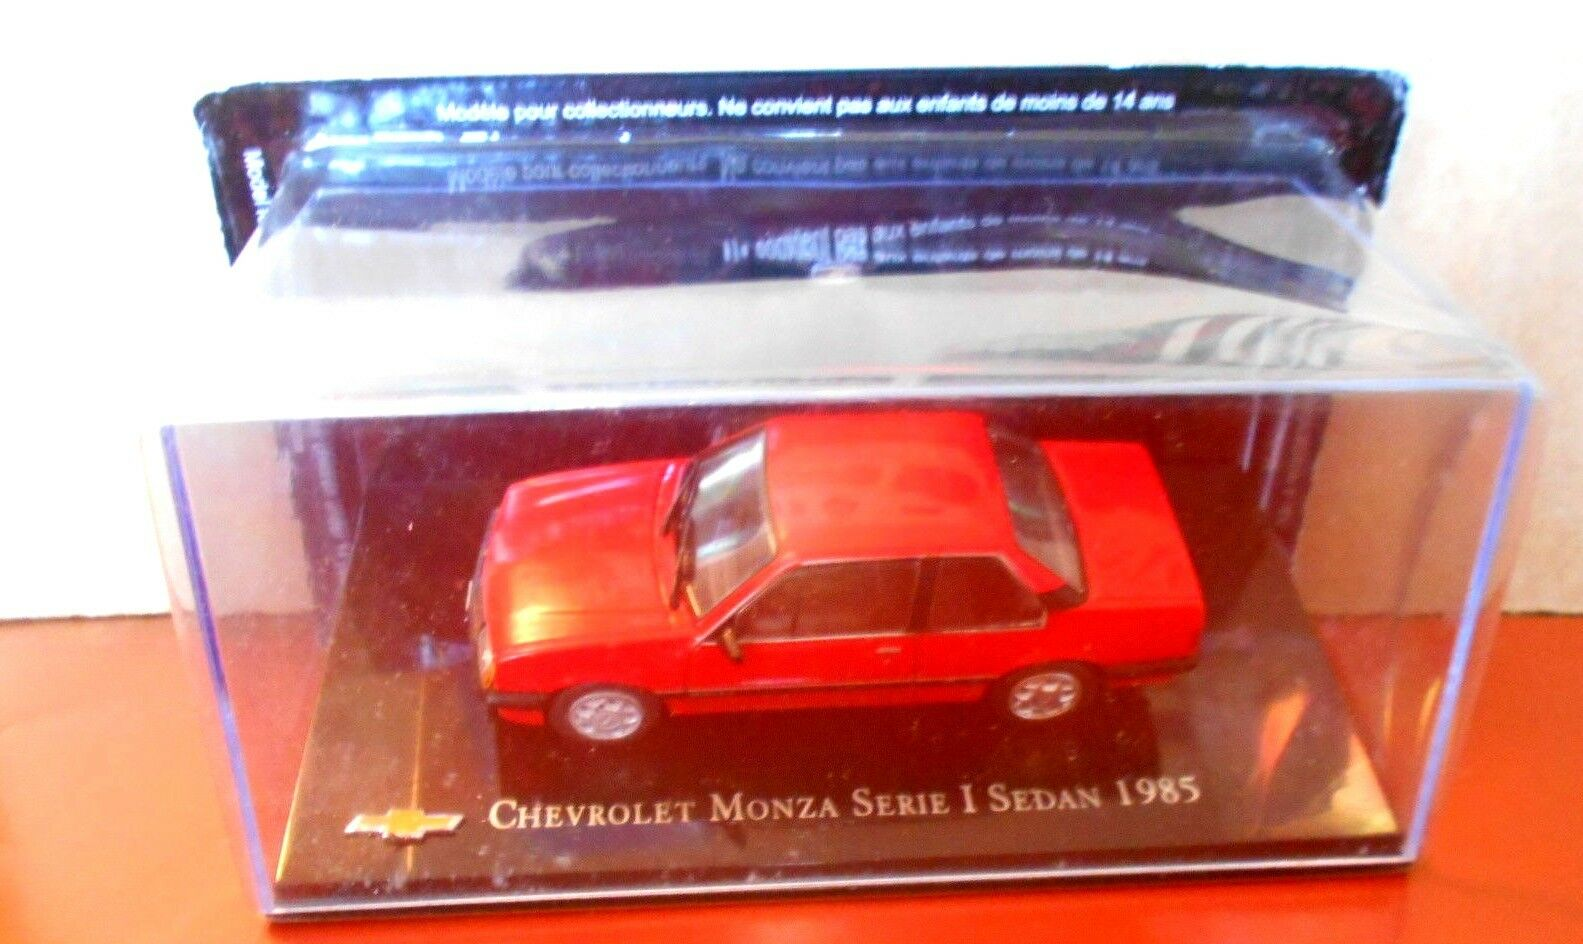 DIE CAST  CHEVROLET MONZA SERIE I I I SEDAN - 1985  SCALA 1 43 03e973